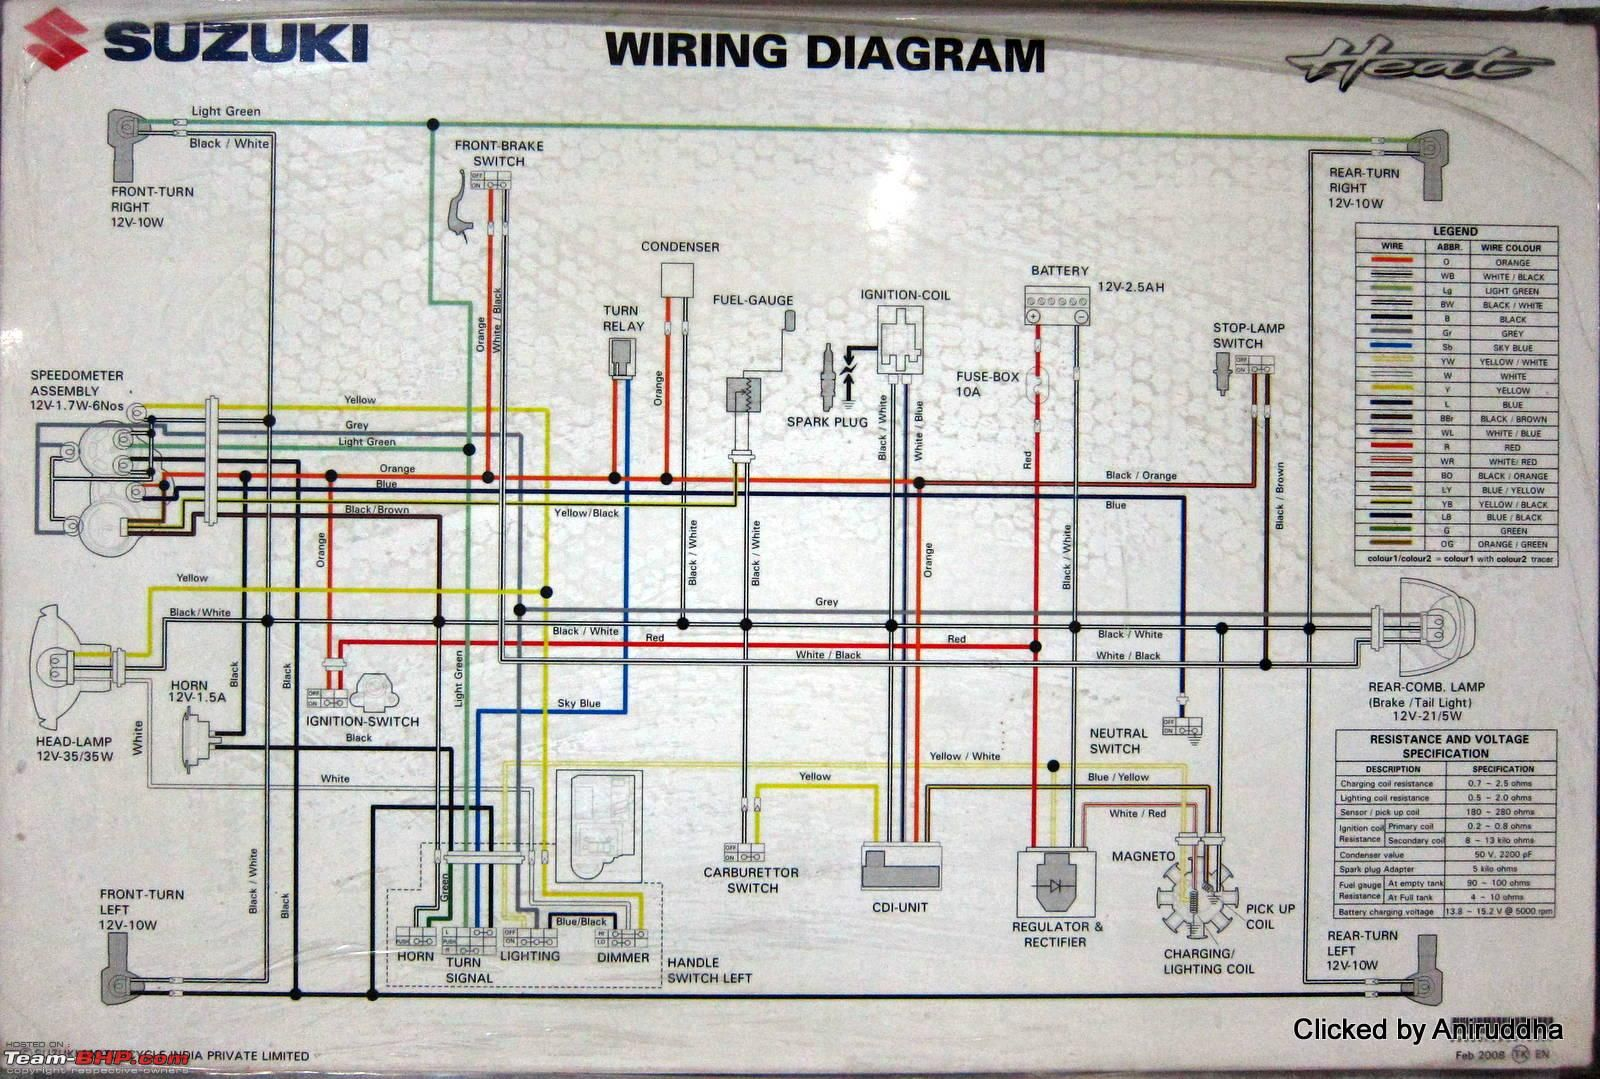 3886369ee79547bbd0de65d9c521eb79 circuit diagrams of indian motorcycles and scooters img_0728 jpg suzuki motorcycle wiring diagrams at n-0.co